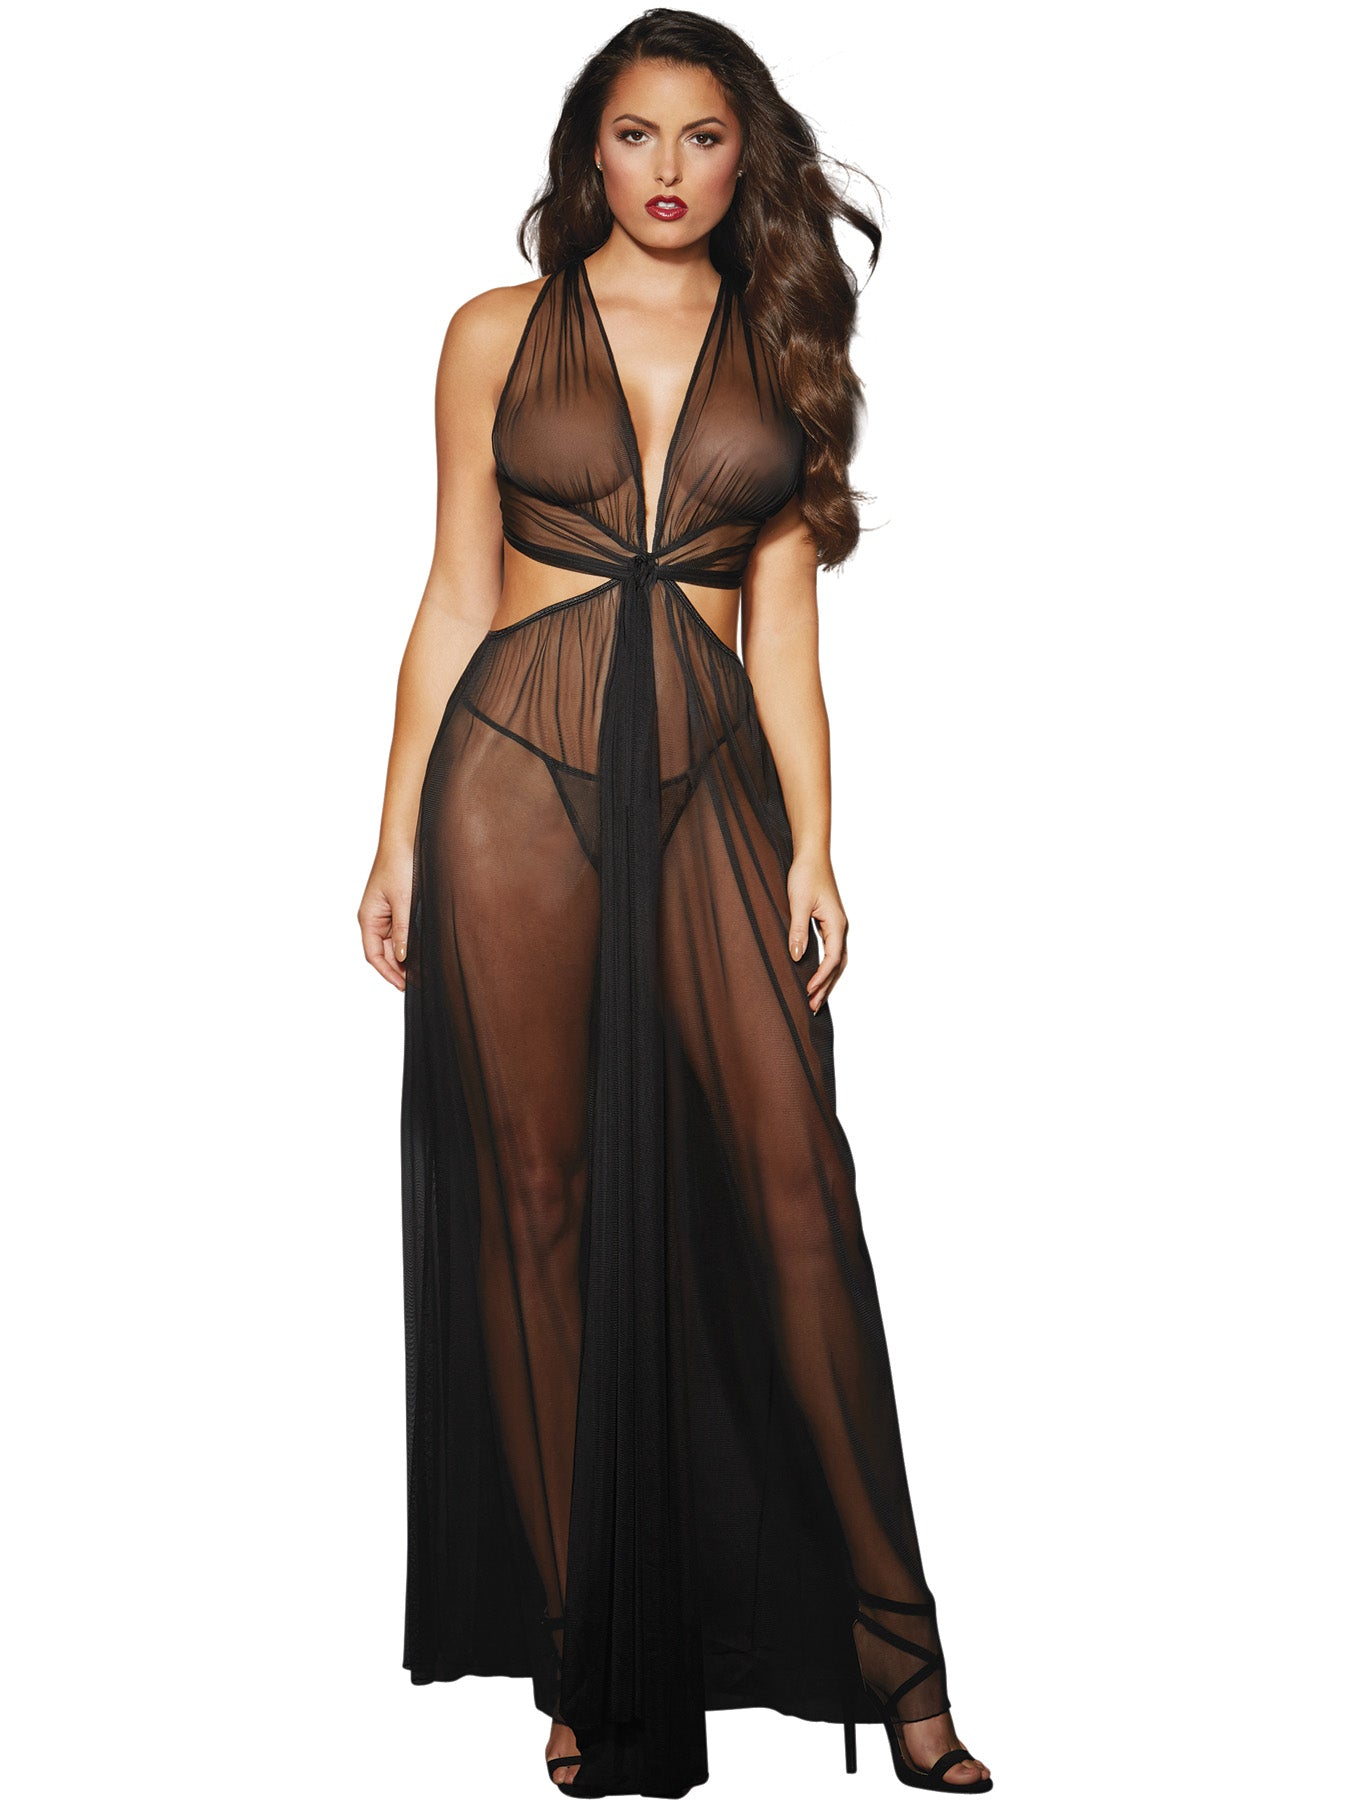 Gown, G-String - One Size - Black-Luvviu